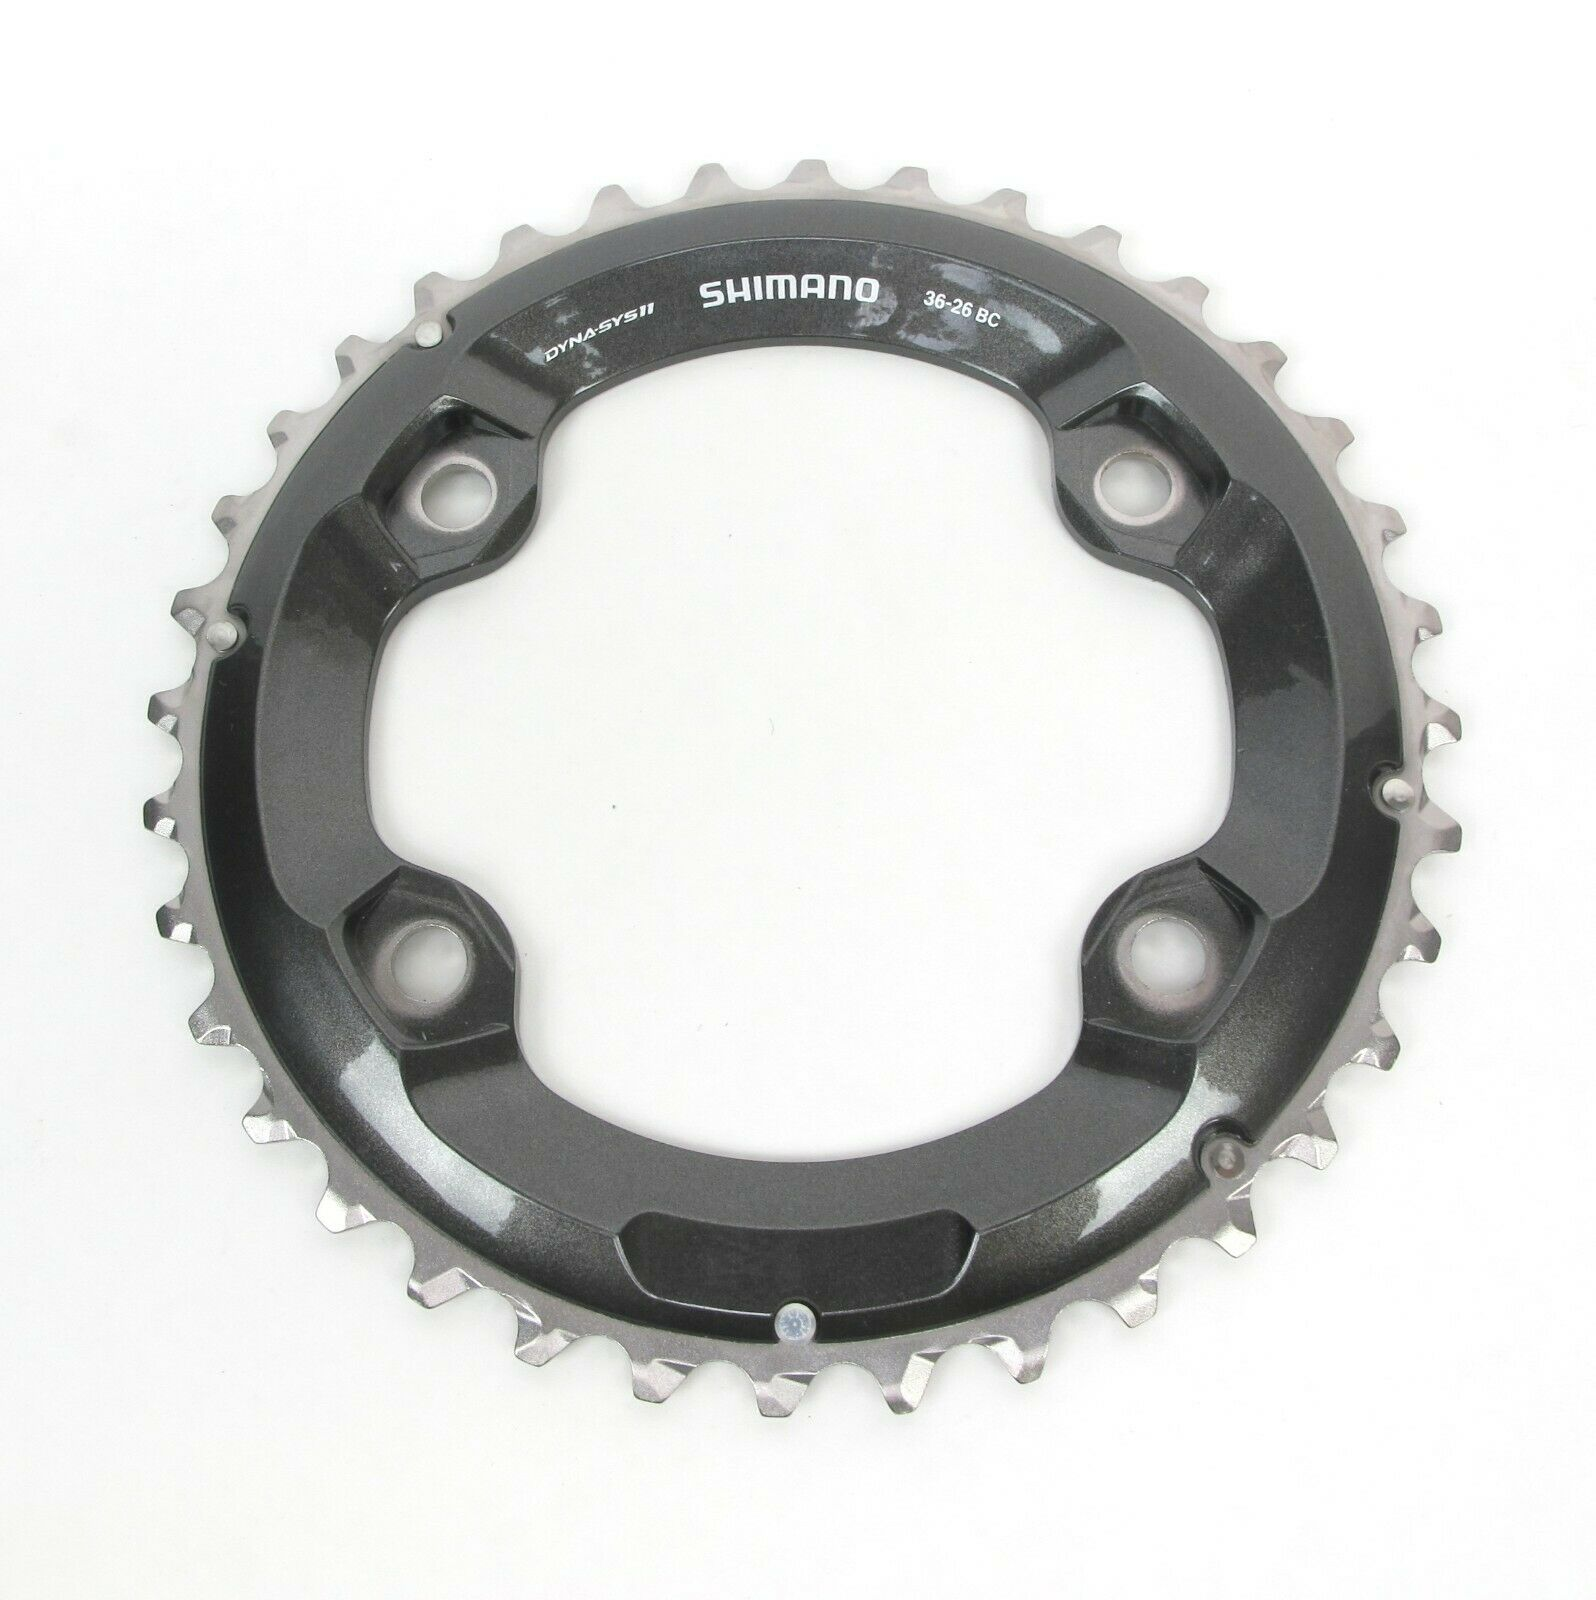 Chainring 26T-BC for 36-26T FC-M7000